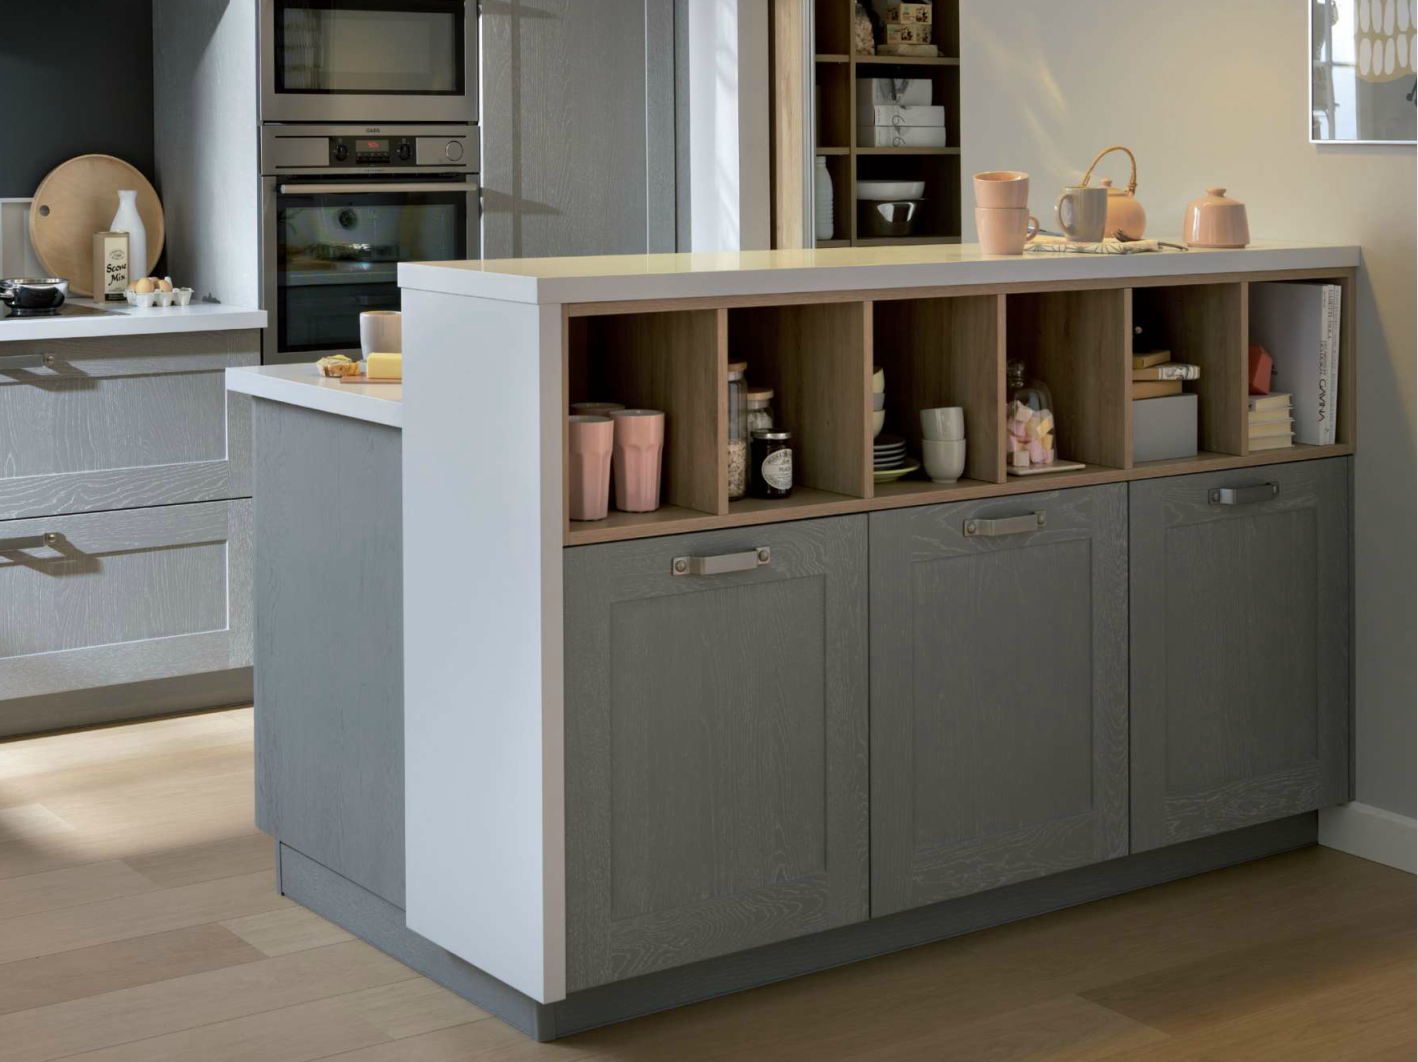 Captivating Back Side Of Island: Cabinets And Shelves At Bar Height. Schmidt